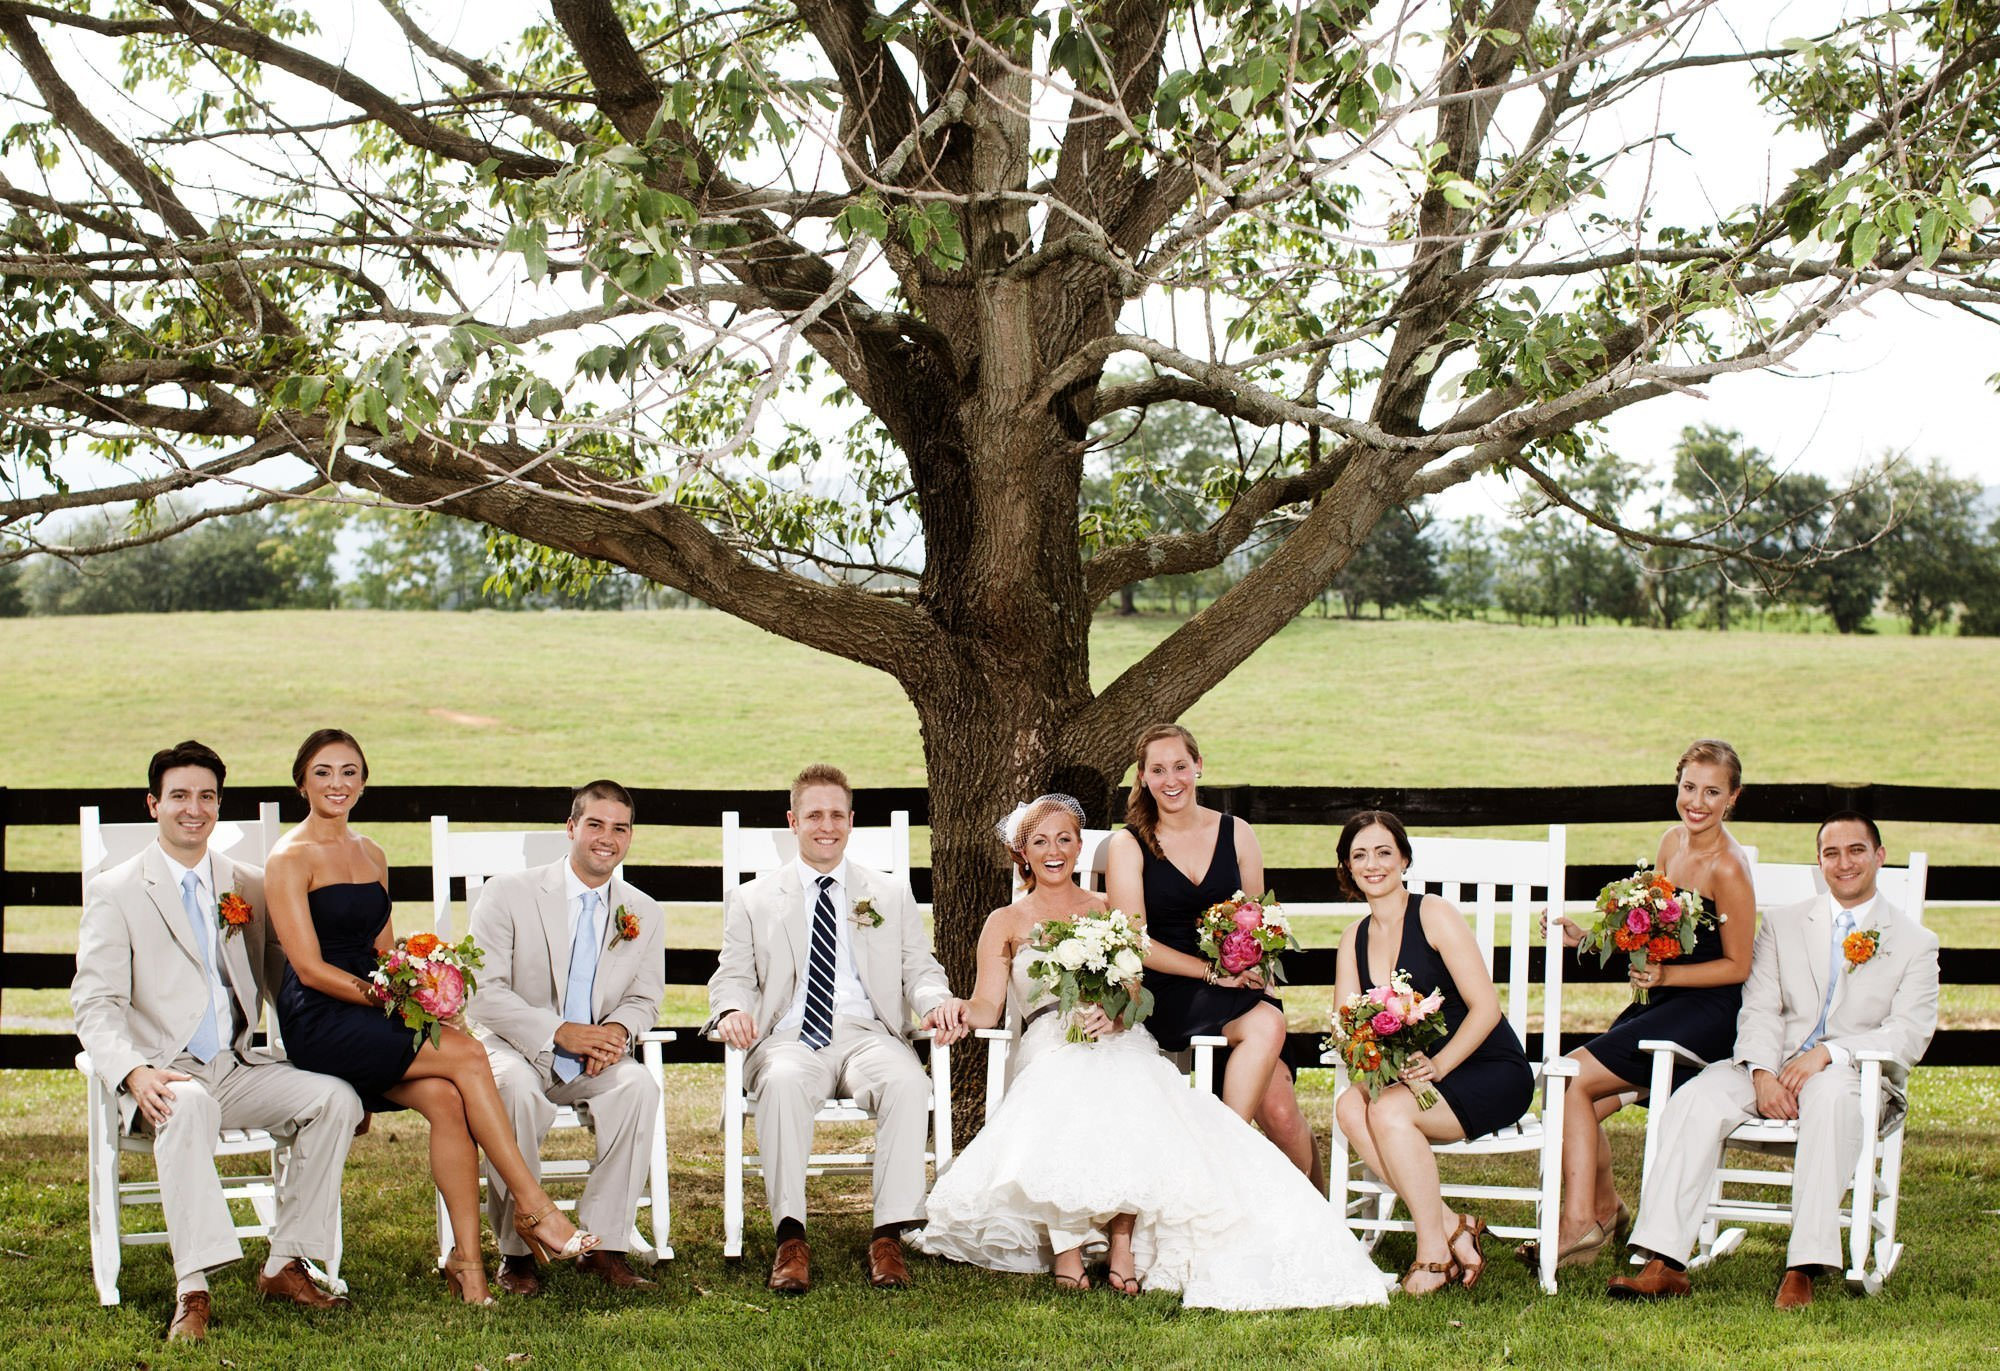 A portrait of the wedding party at Marriott Ranch.